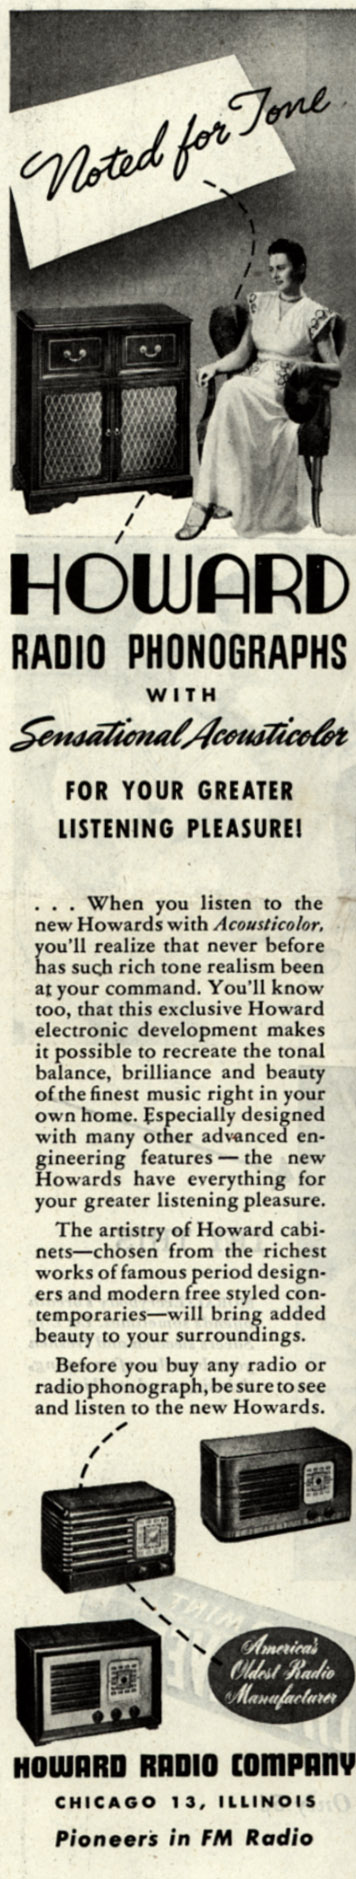 Noted_for_tone-Howard_Radio_Phonographs2